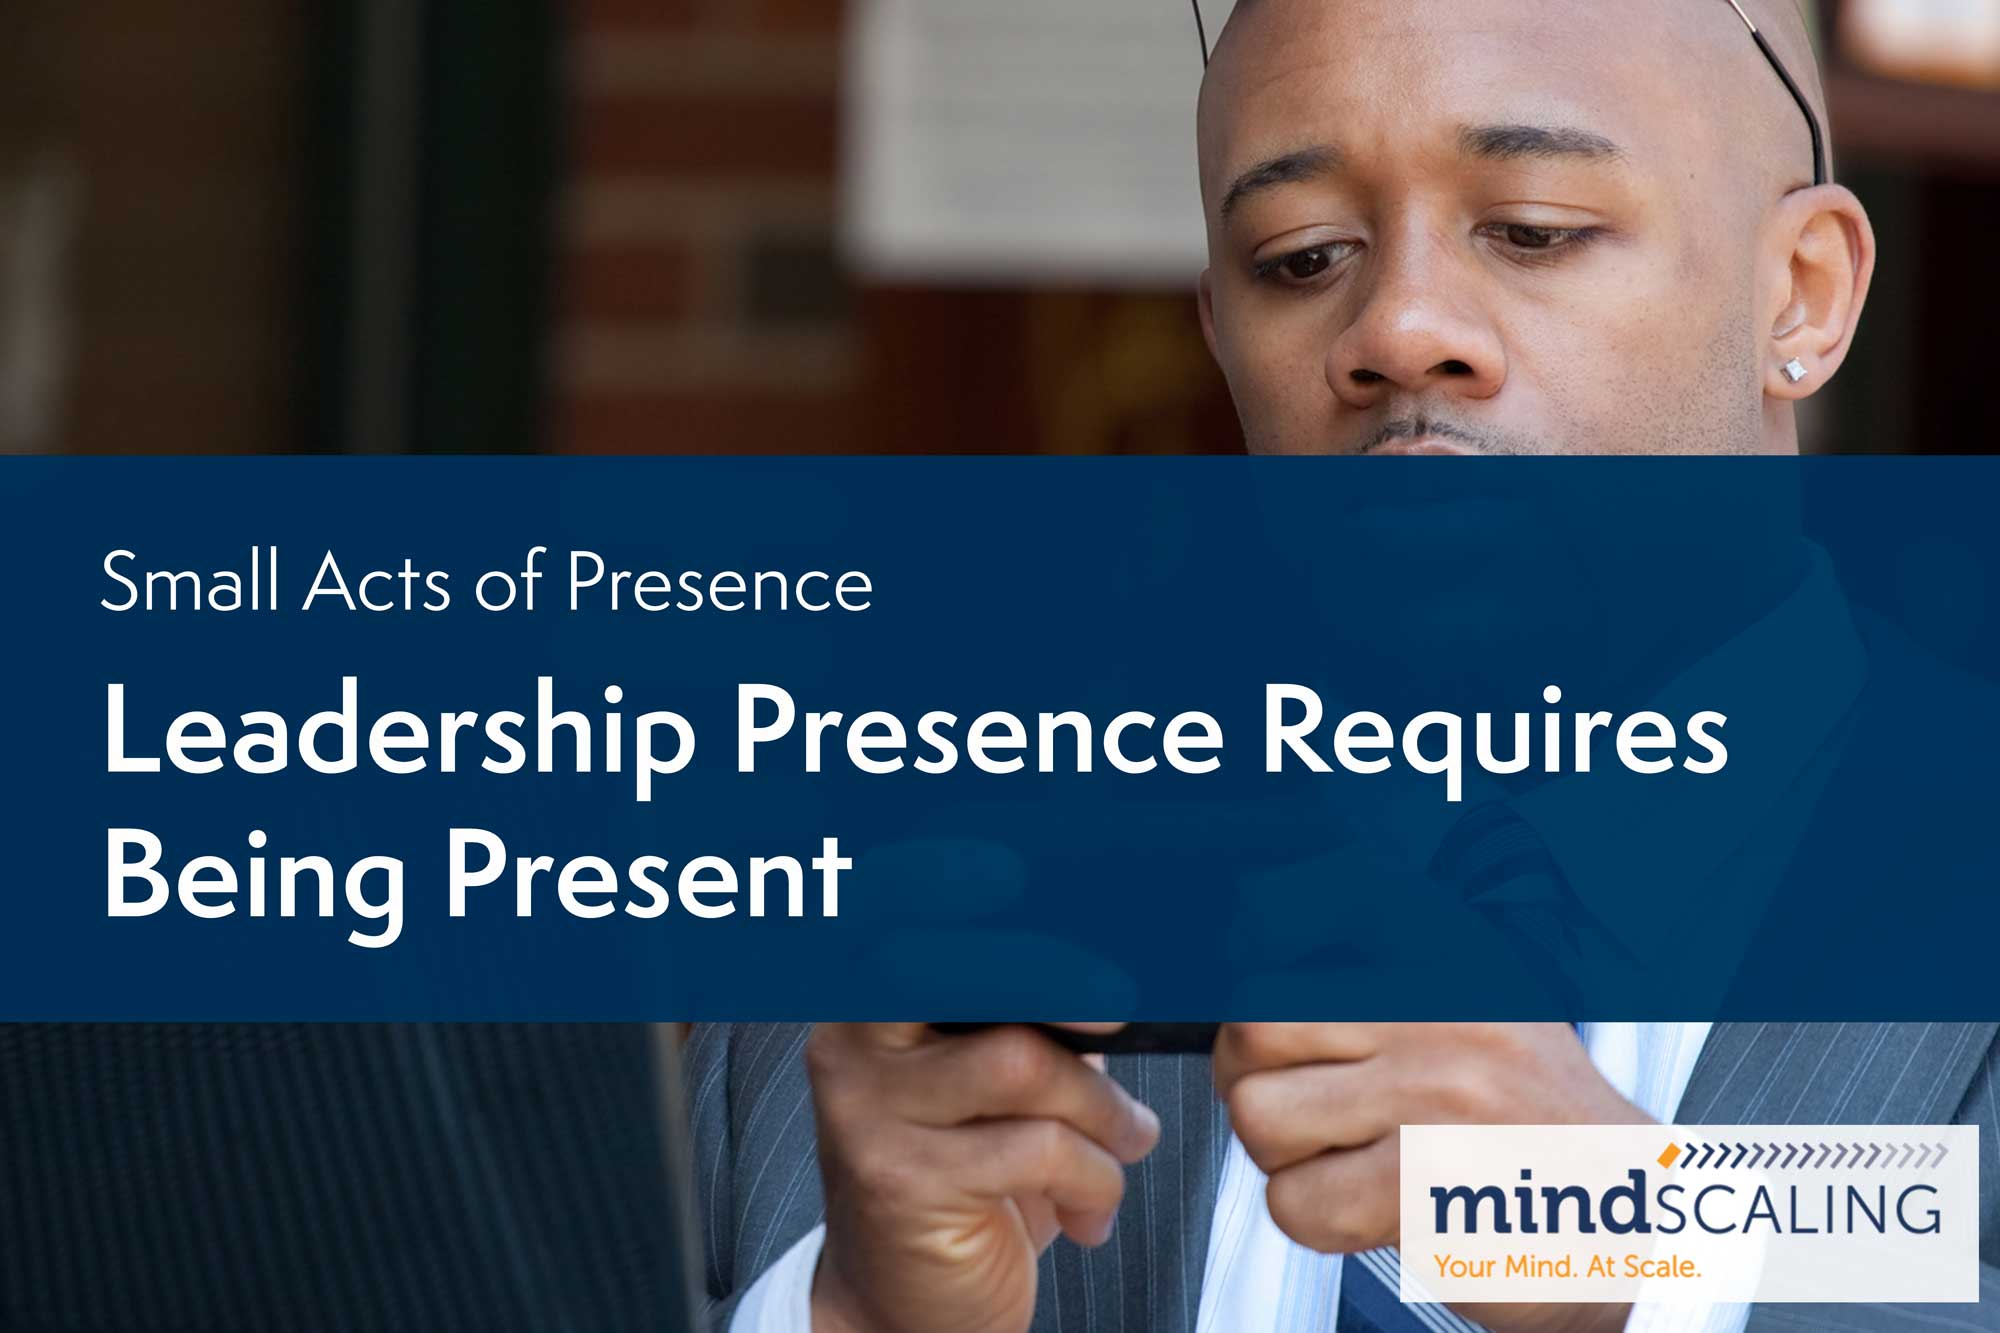 Small Acts of Presence: Leadership Presence Requires Being Present image